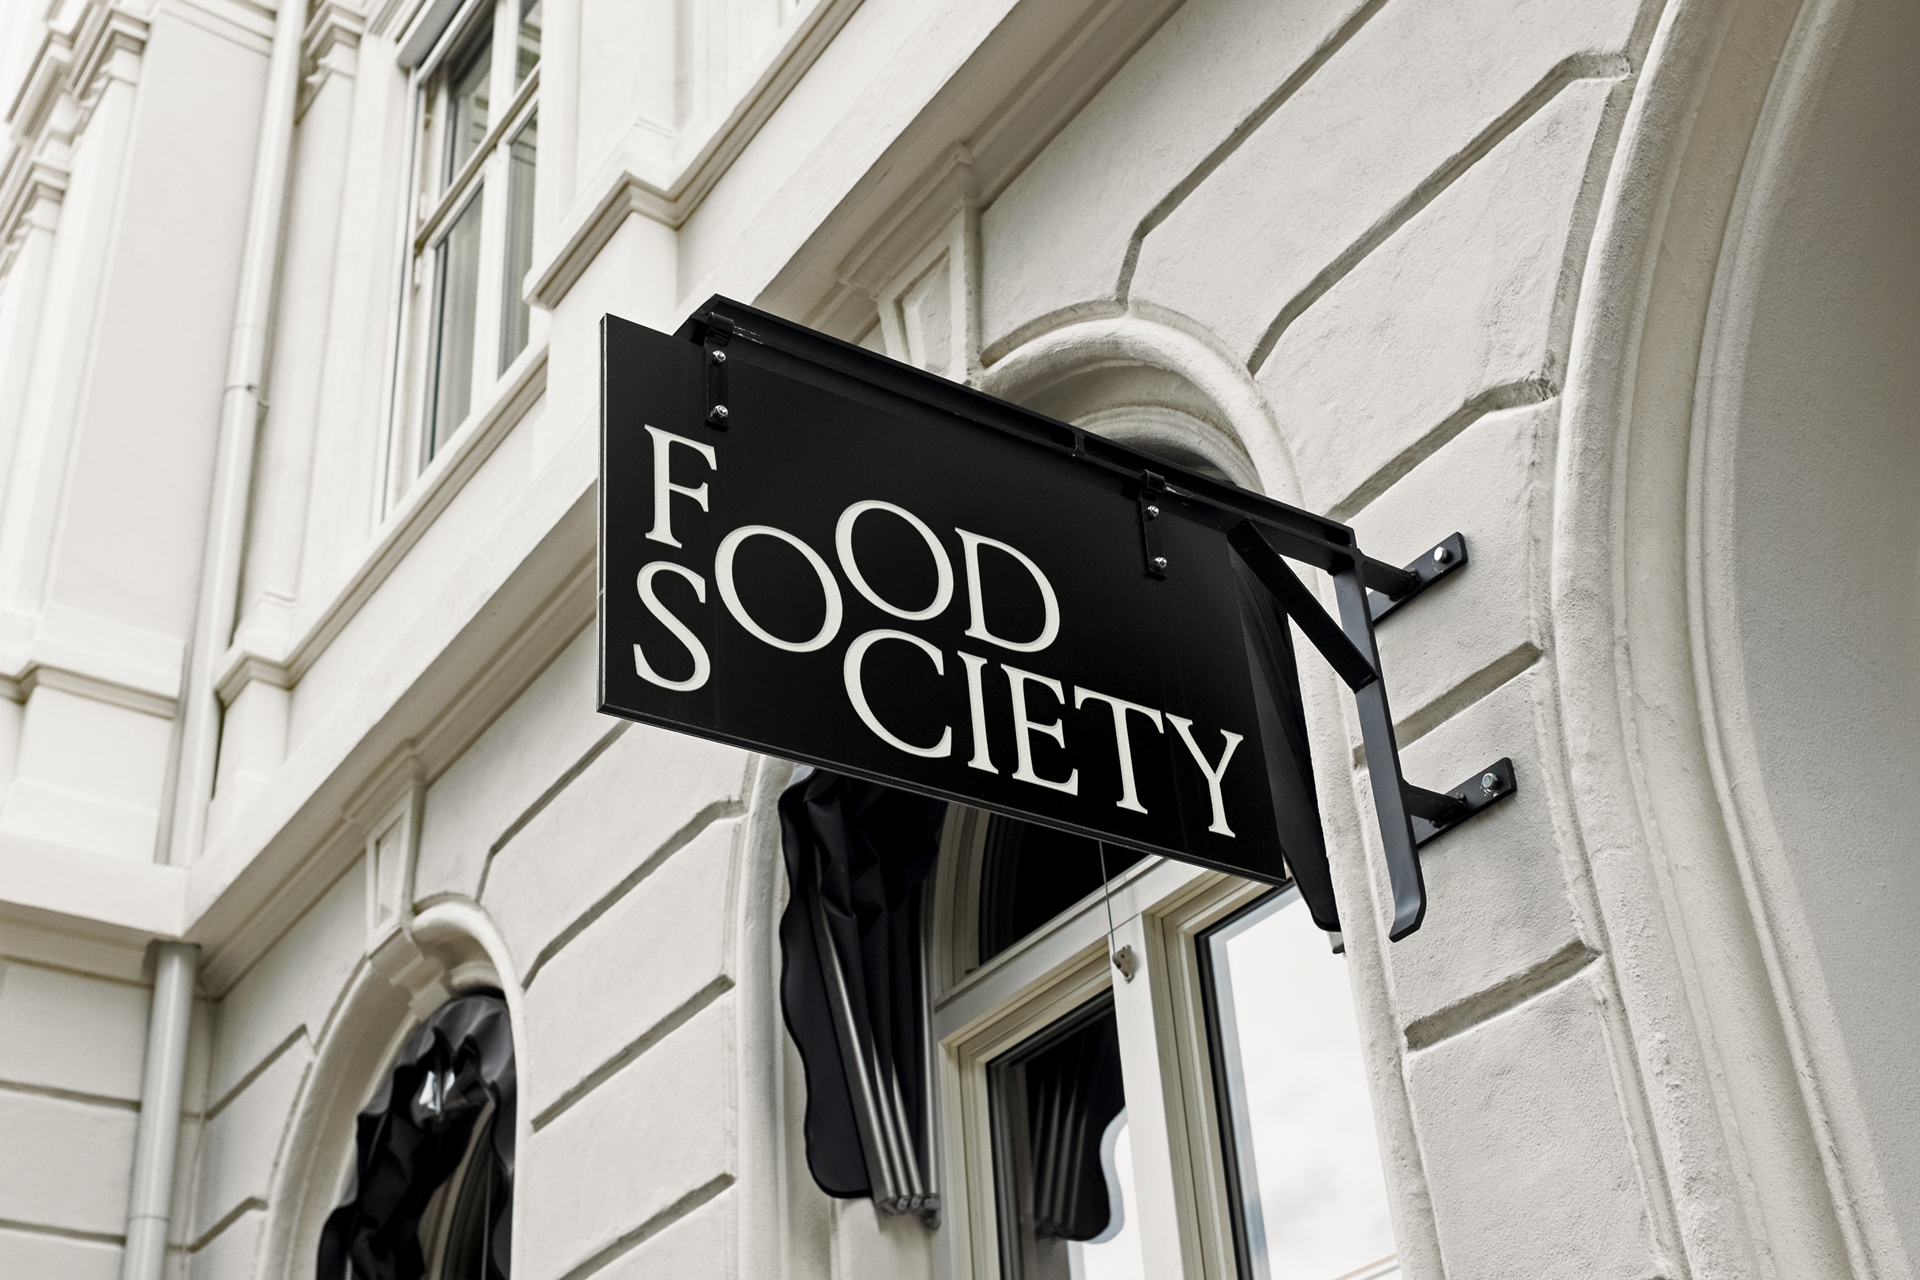 FoodSociety_Signage